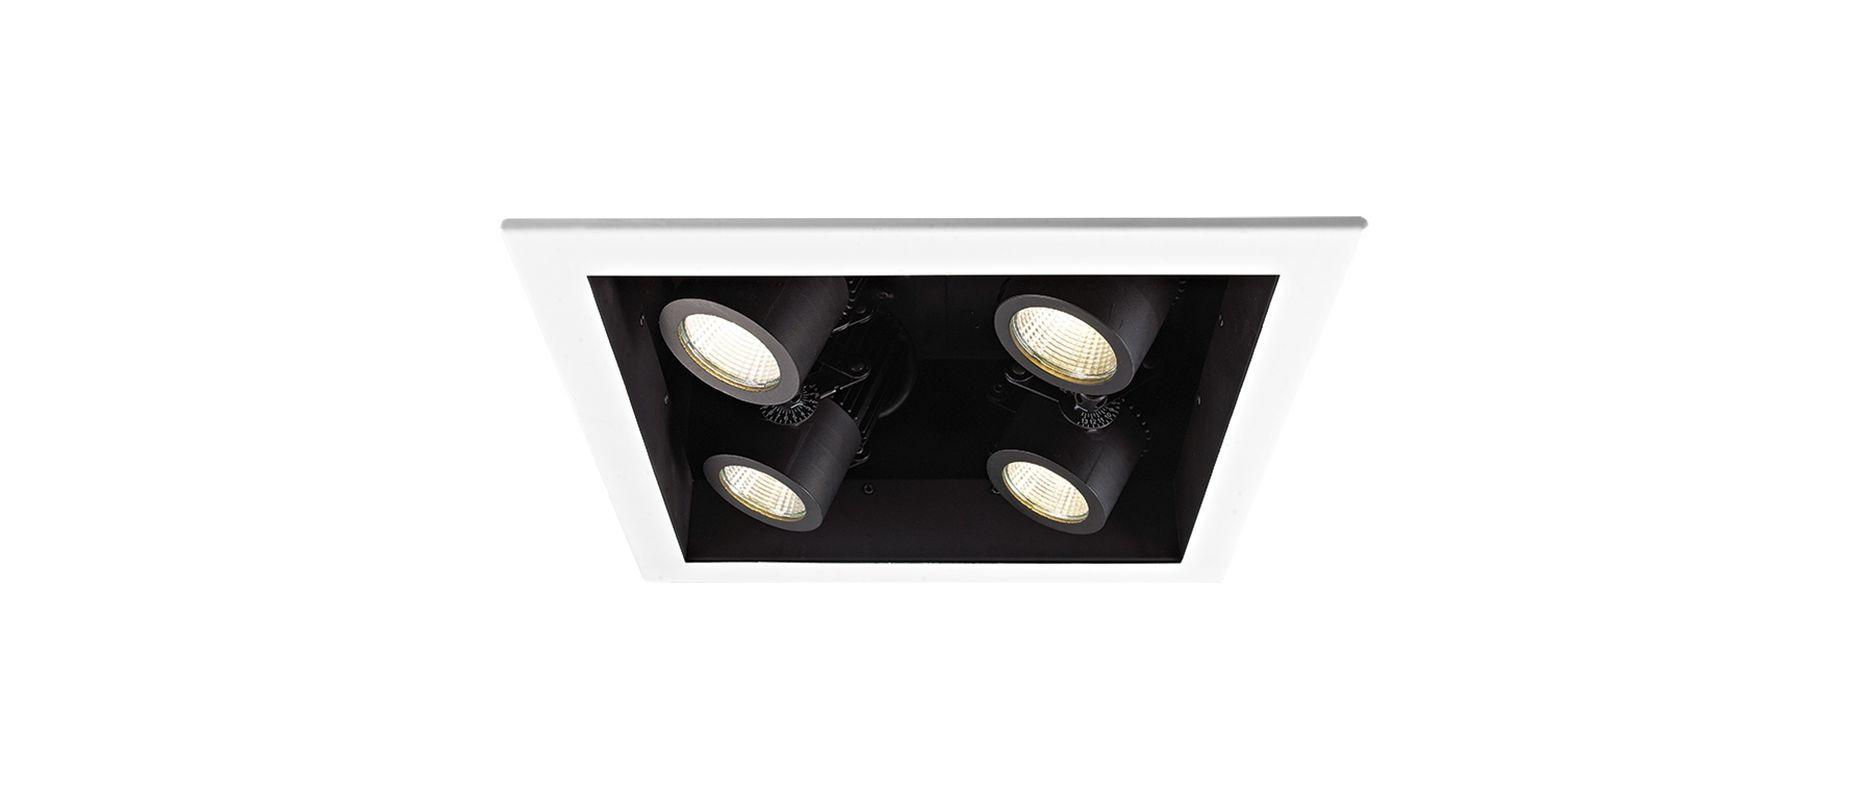 WAC Lighting MT-4LD226N-S35 4 Light Energy Star 3500K High Output LED